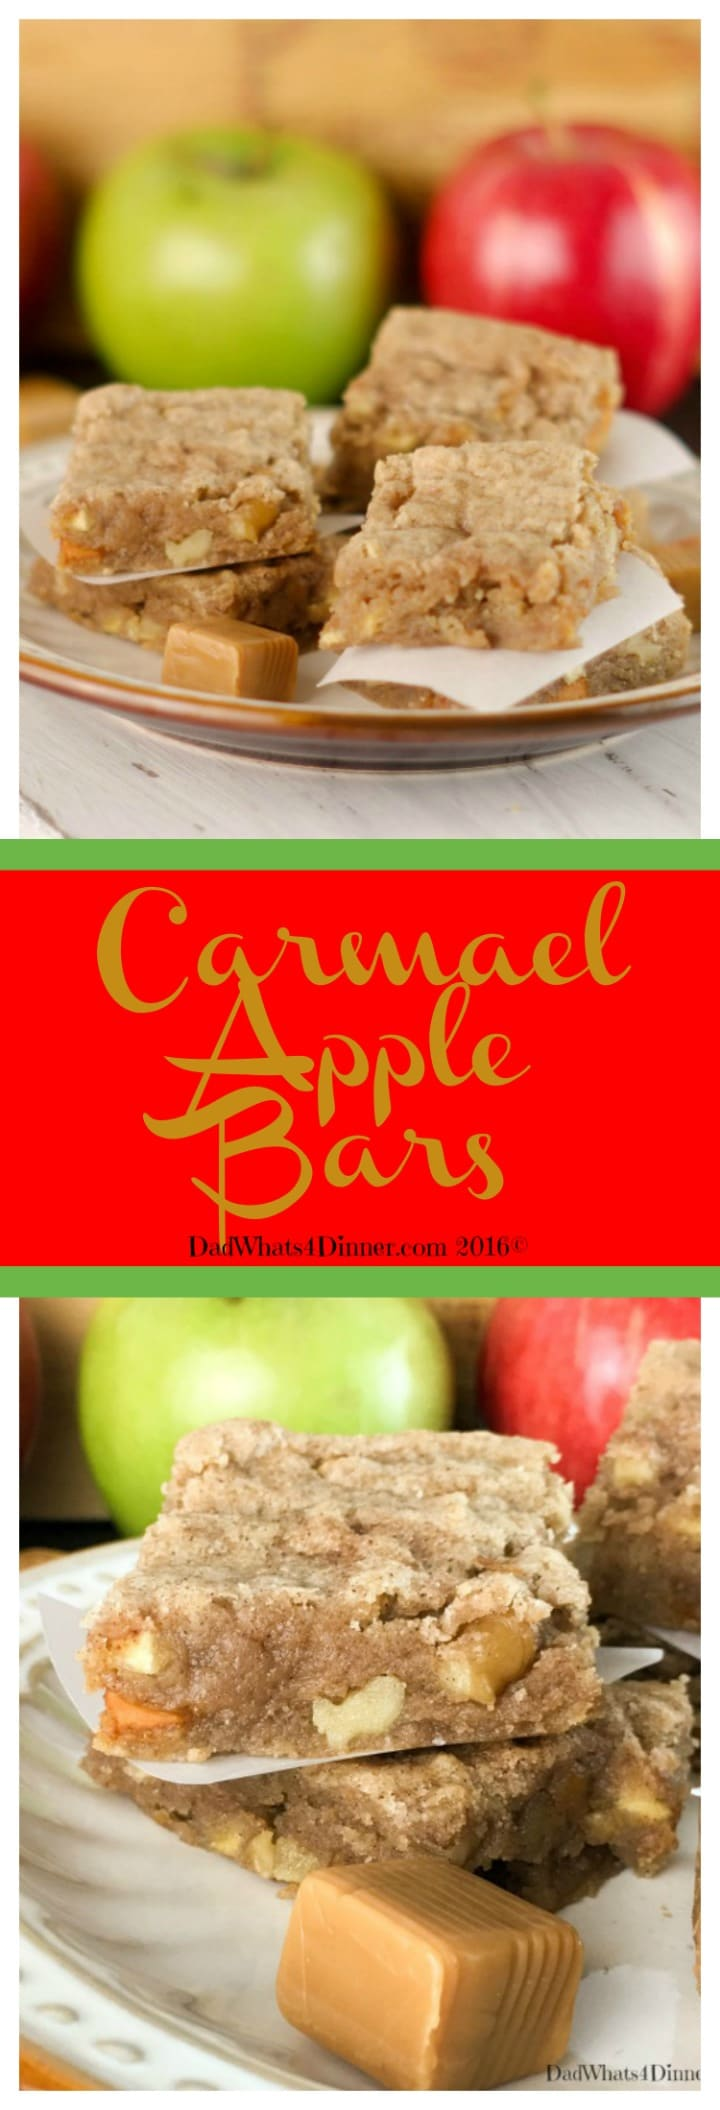 Apple picking season is here and if you want a taste of fall in a blondie then my Caramel Apple Bars will be your new favorite sweet treat. #apples #appleweek #fall #desserts www.dadwhats4dinner.com